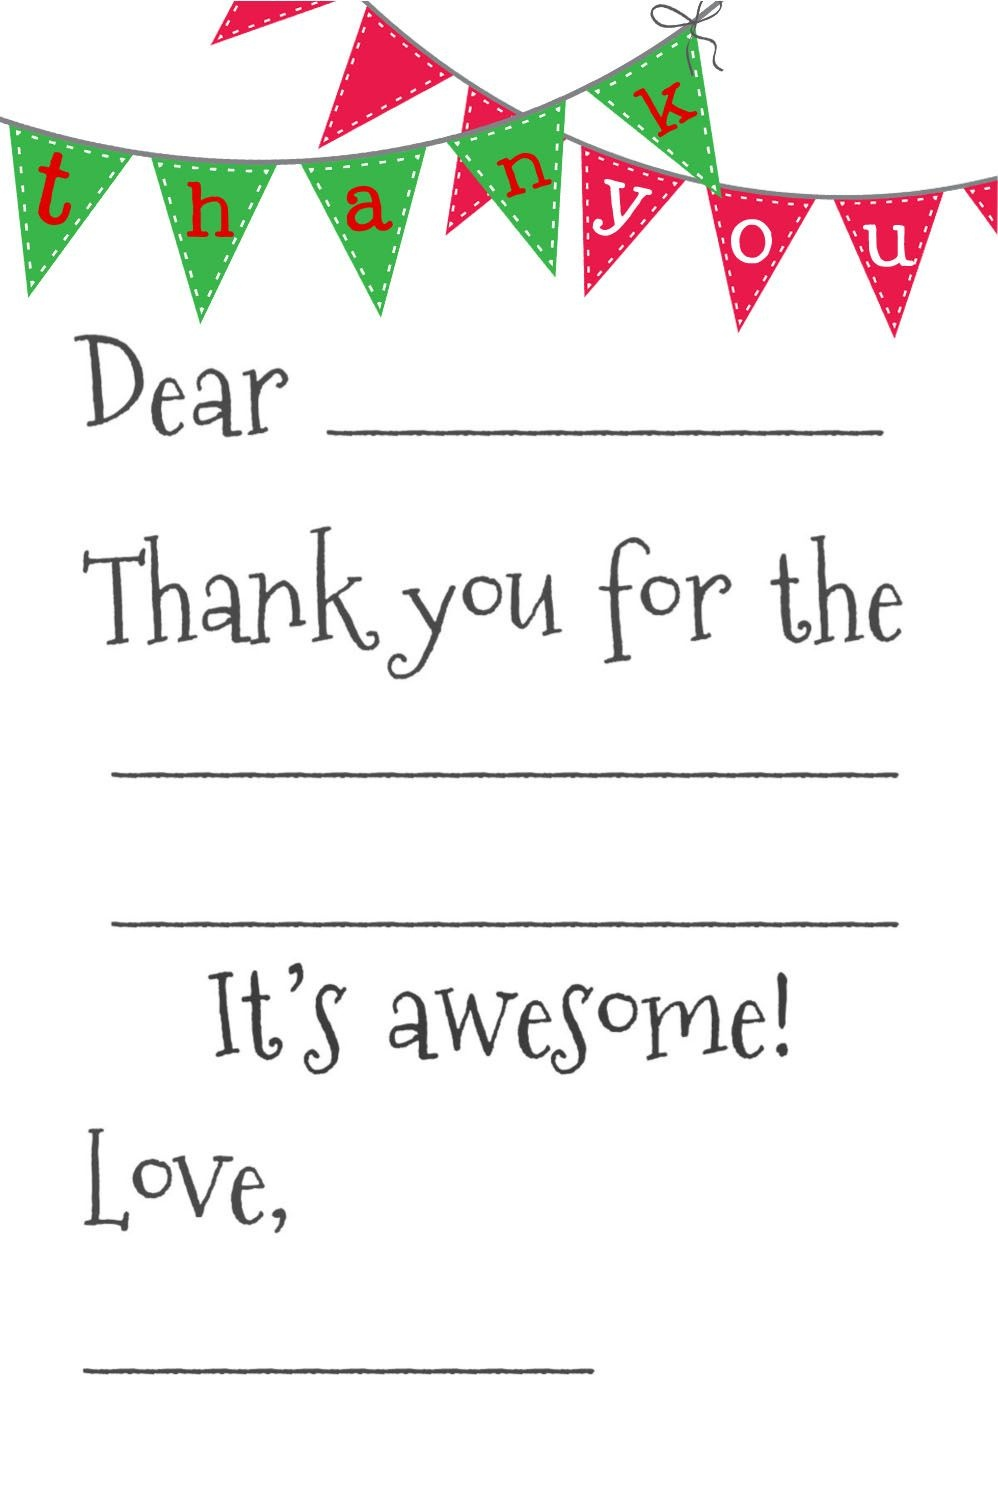 Free Fill-In-The-Blank Thank-You Cards | Printables | Free Thank You - Free Printable Thank You Cards For Soldiers